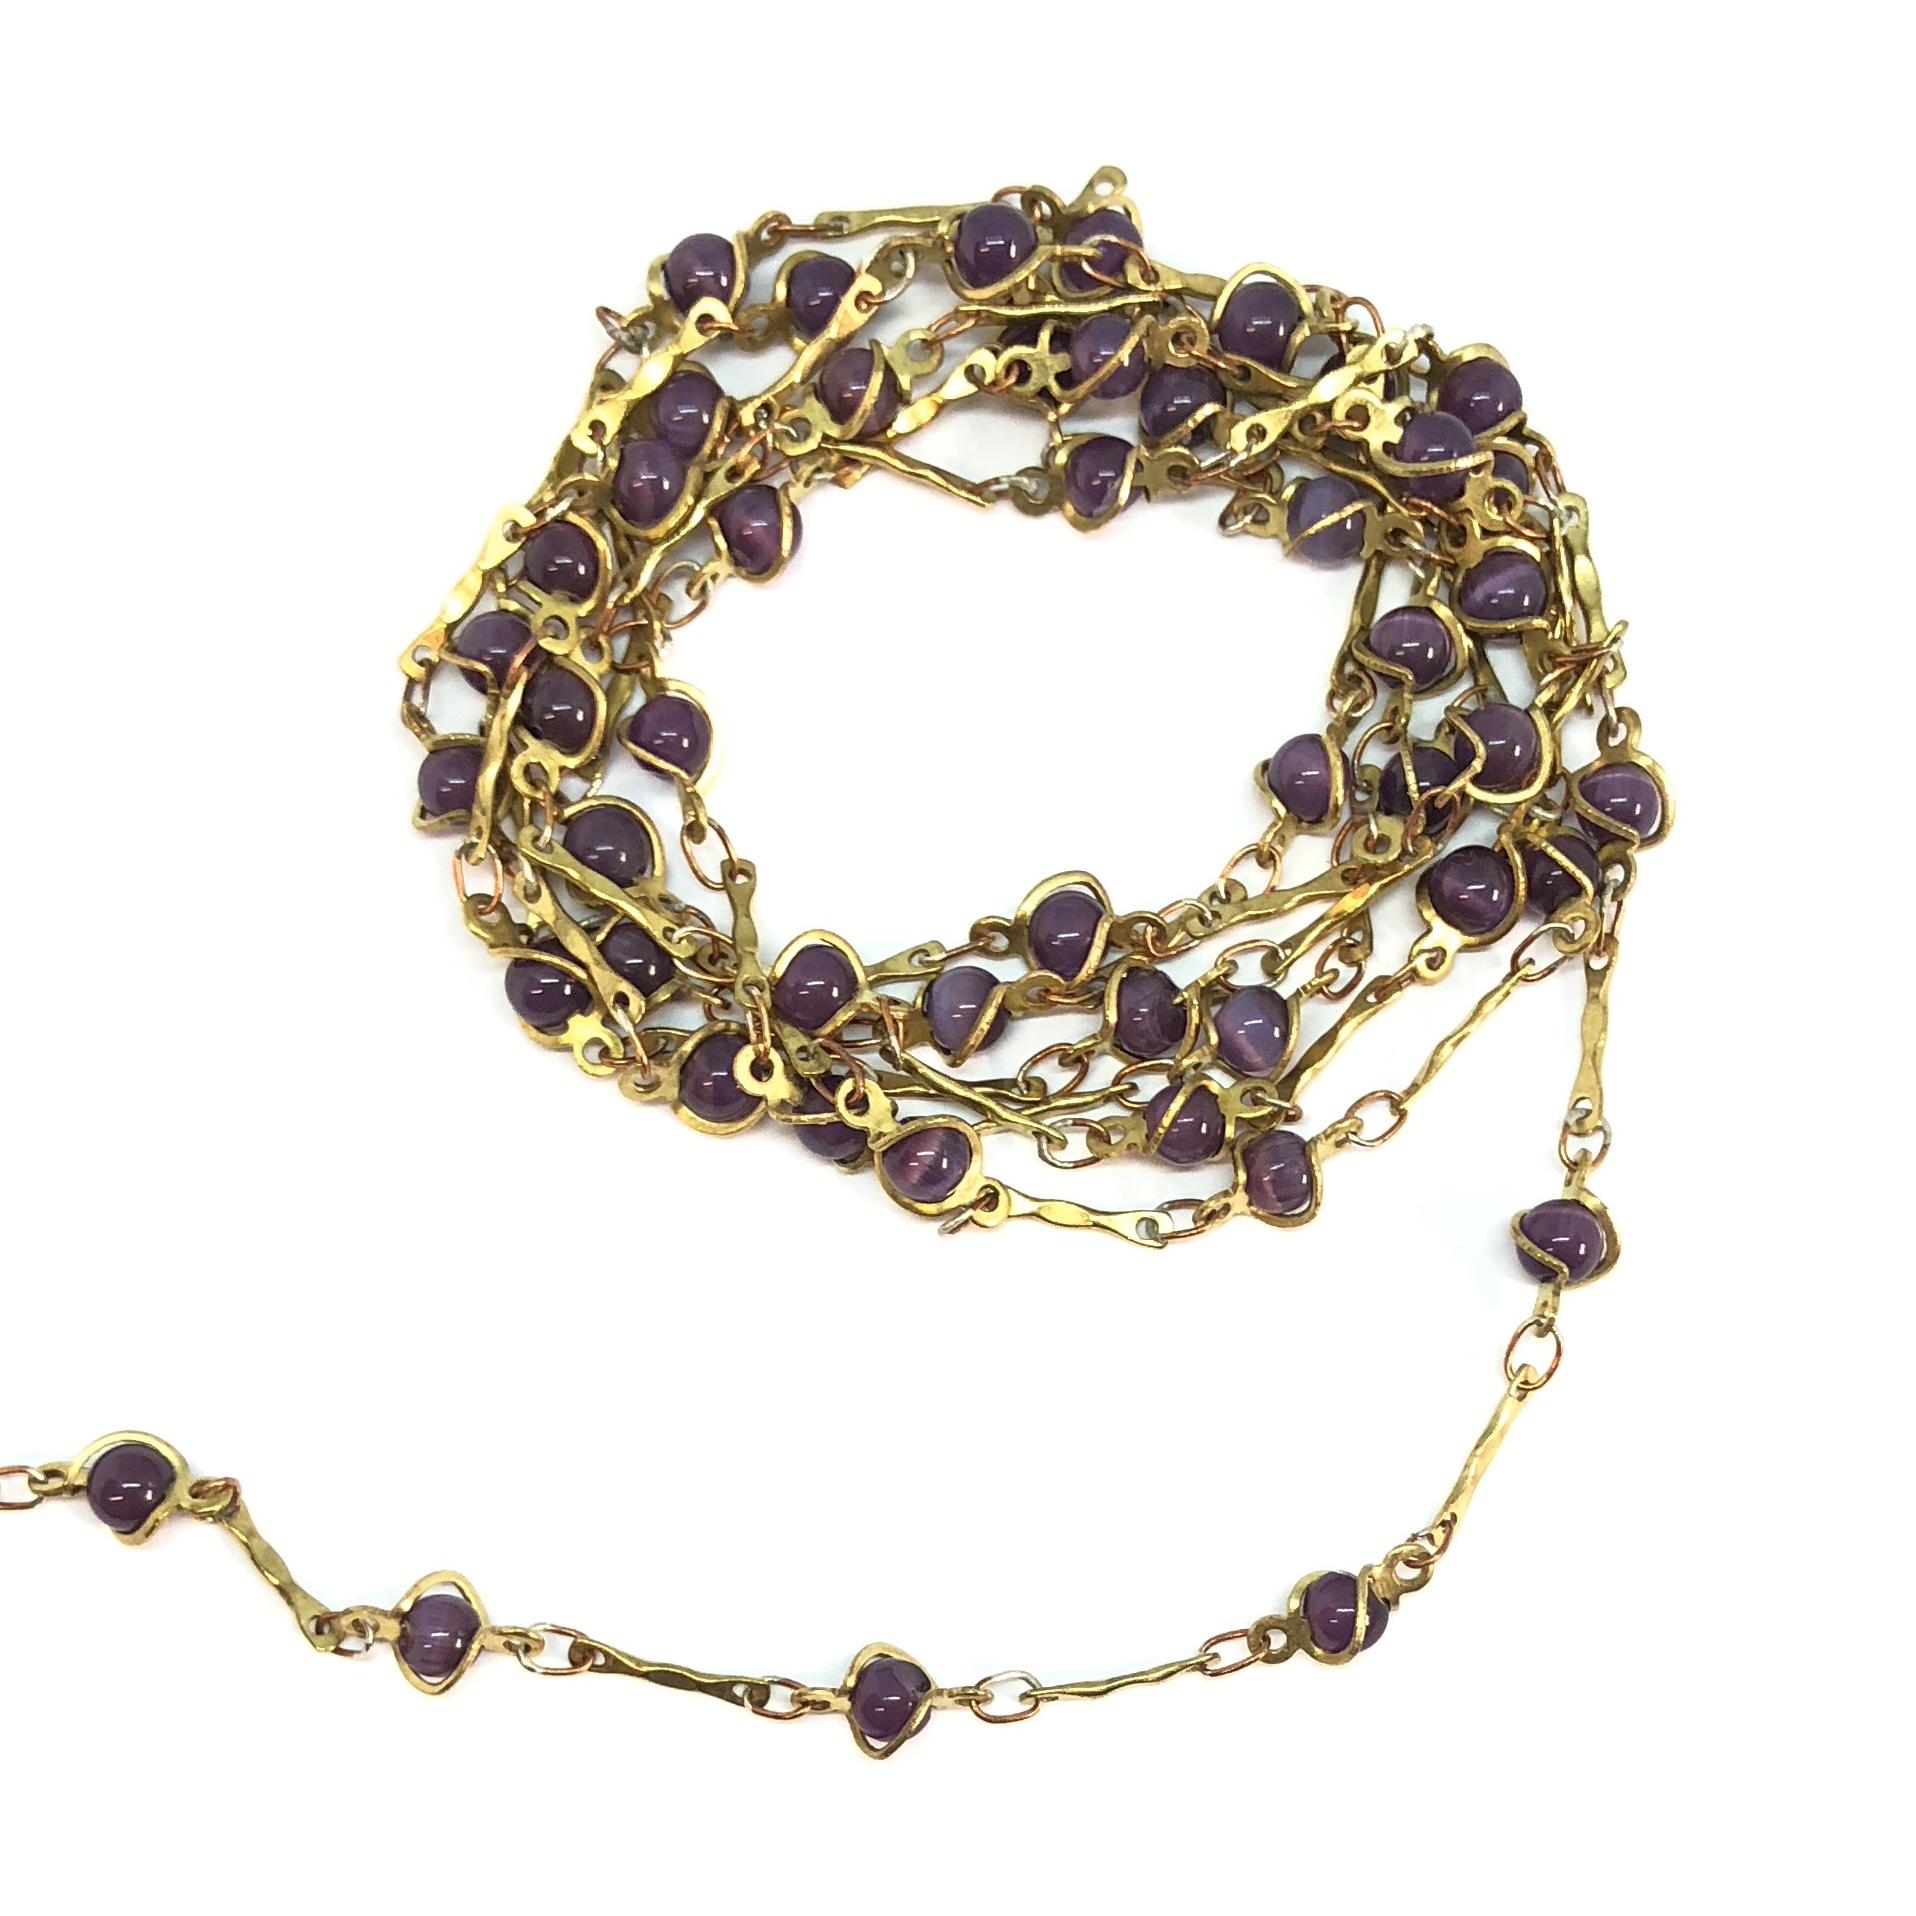 caged bead and link chain, cat's eye bead and link chain, fiber optic bead chain, jewelry chain, jewelry making, vintage jewelry supplies, bead chain, glass beads, chain, beaded chain, caged beads, amethyst beads, antique brass chain, 08063